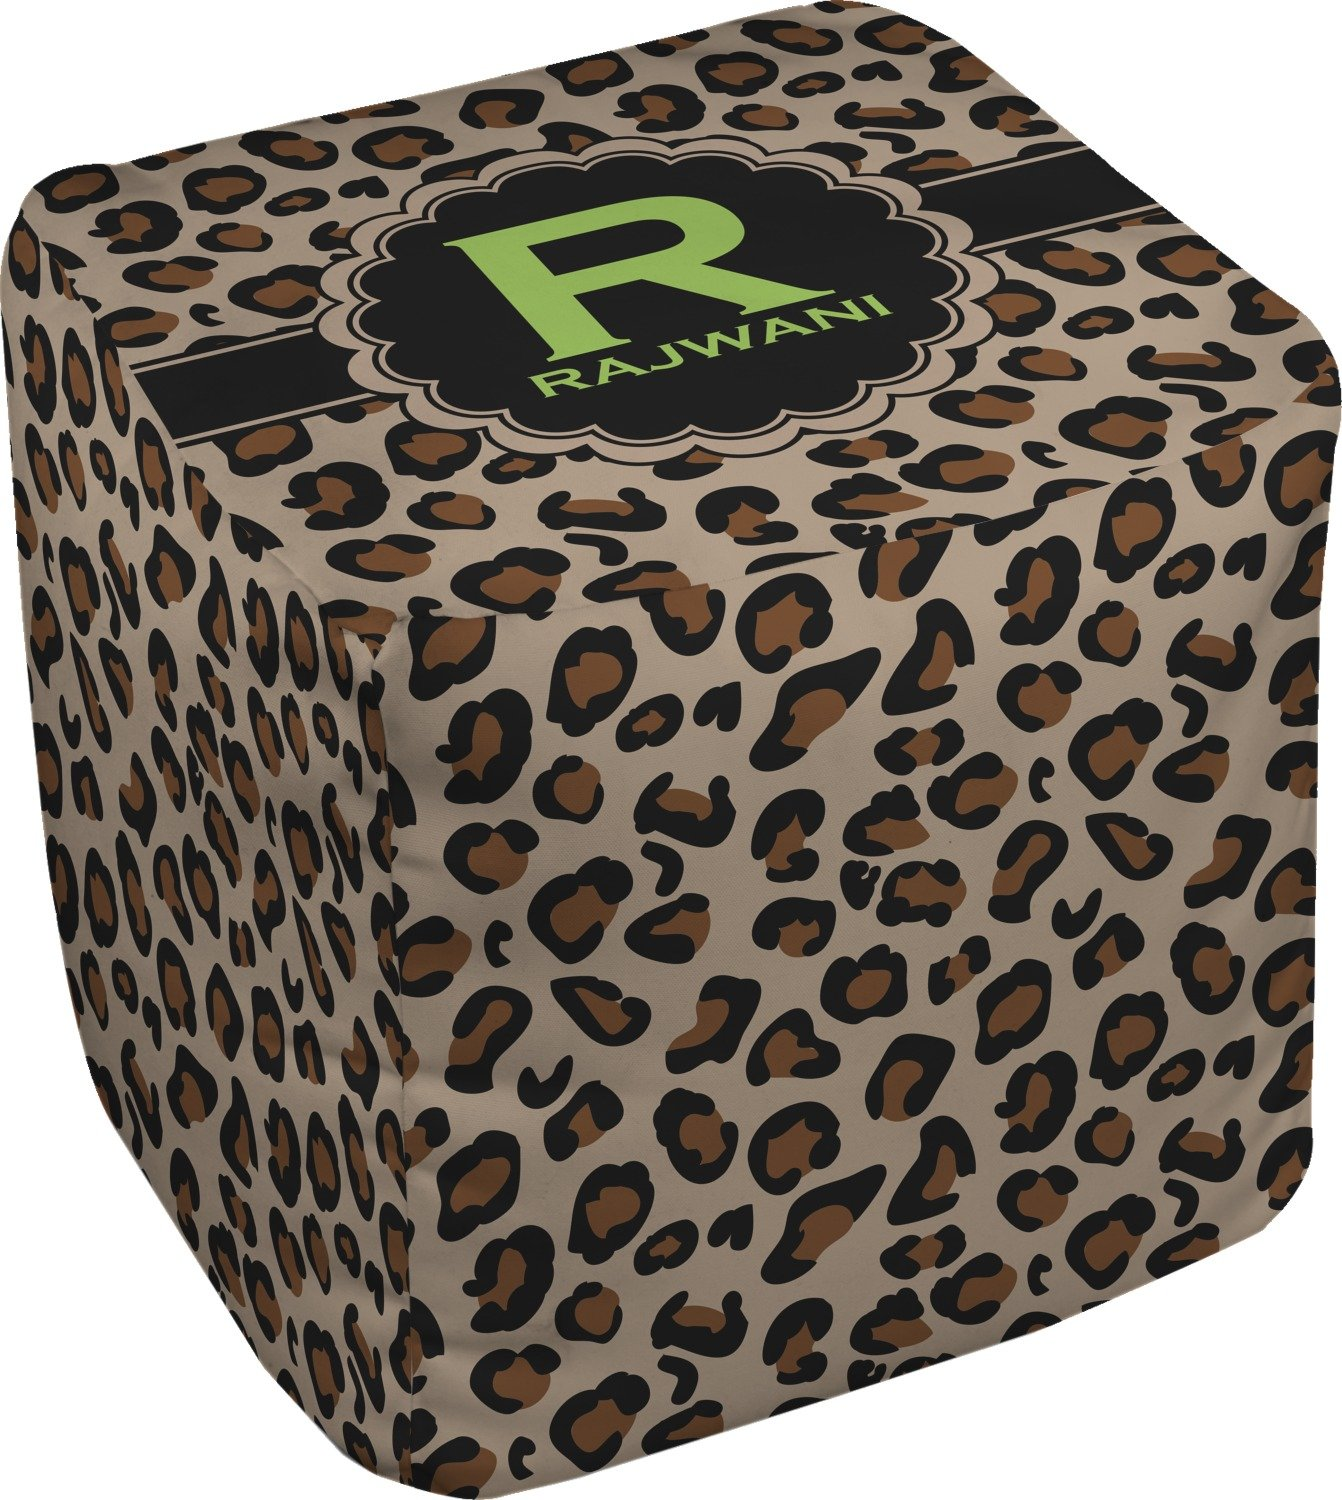 RNK Shops Granite Leopard Cube Pouf Ottoman - 13'' (Personalized)